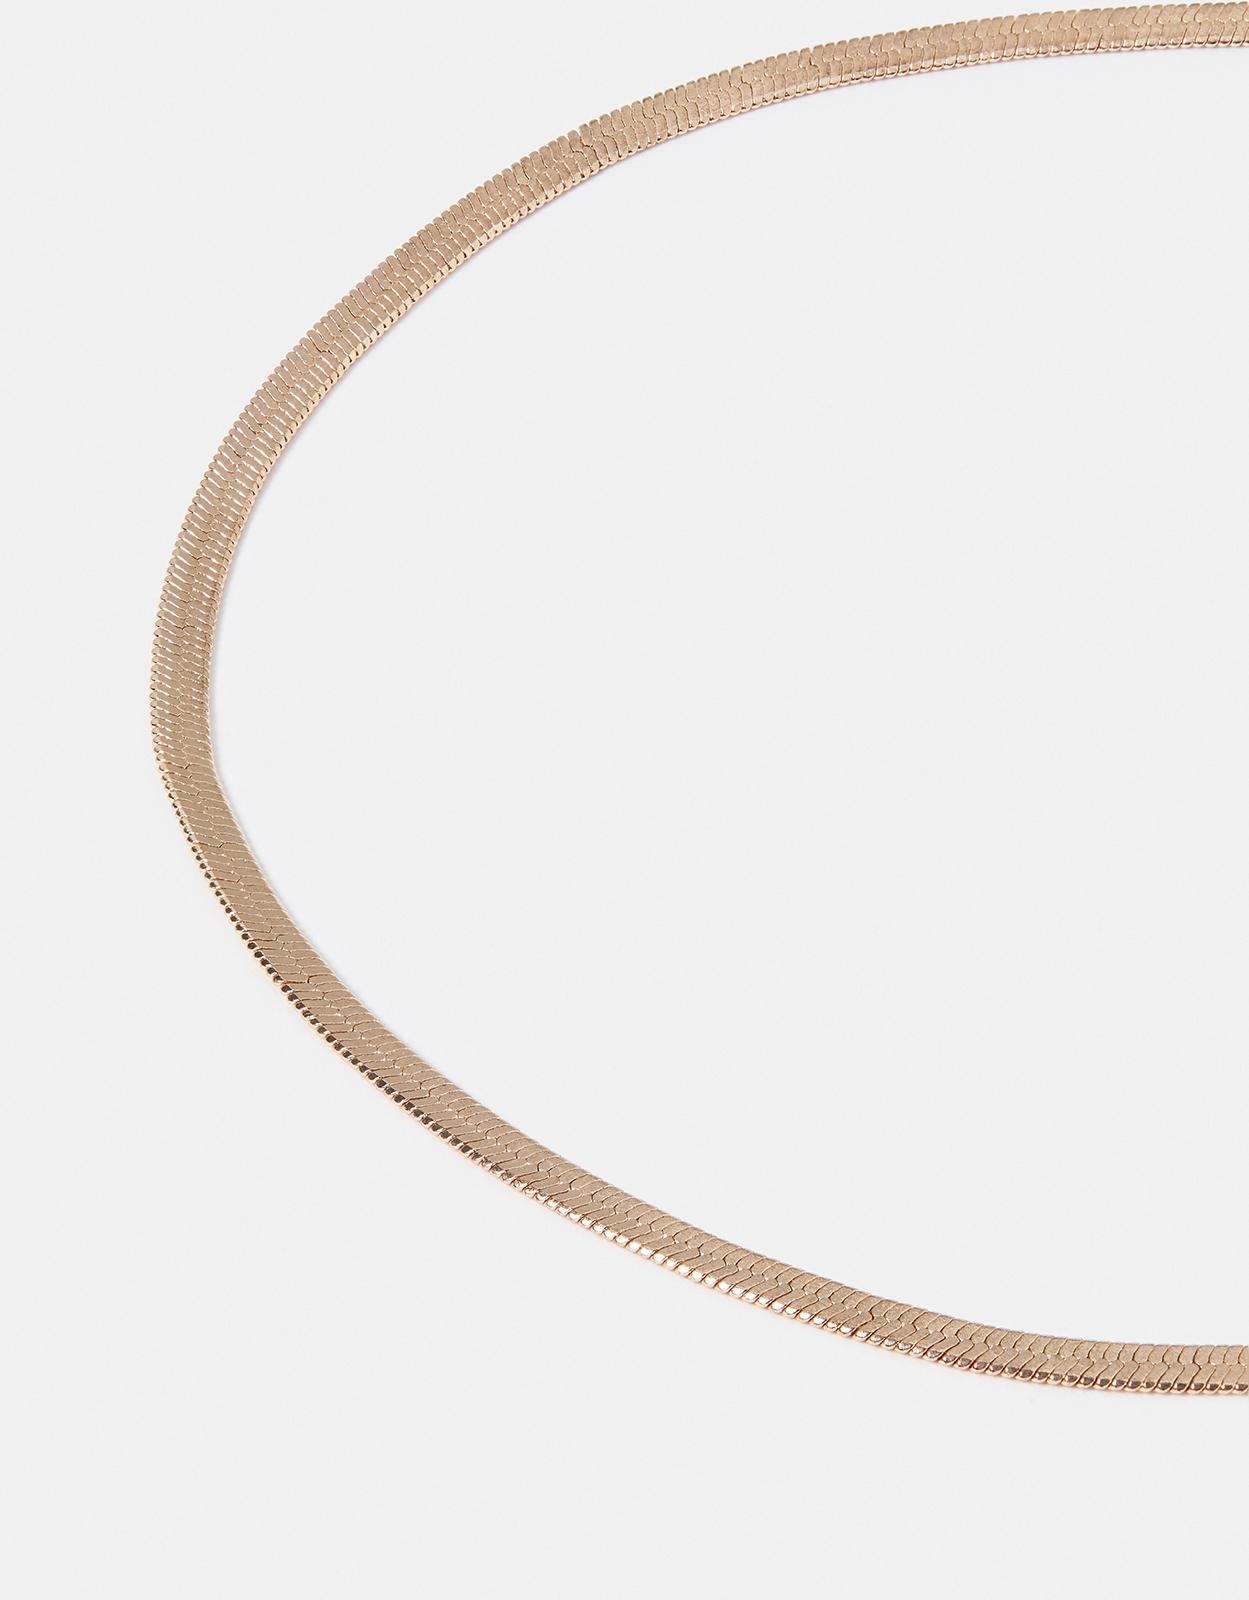 Accessorize Simple Snake Chain Necklace in Rose Gold (Metallic)